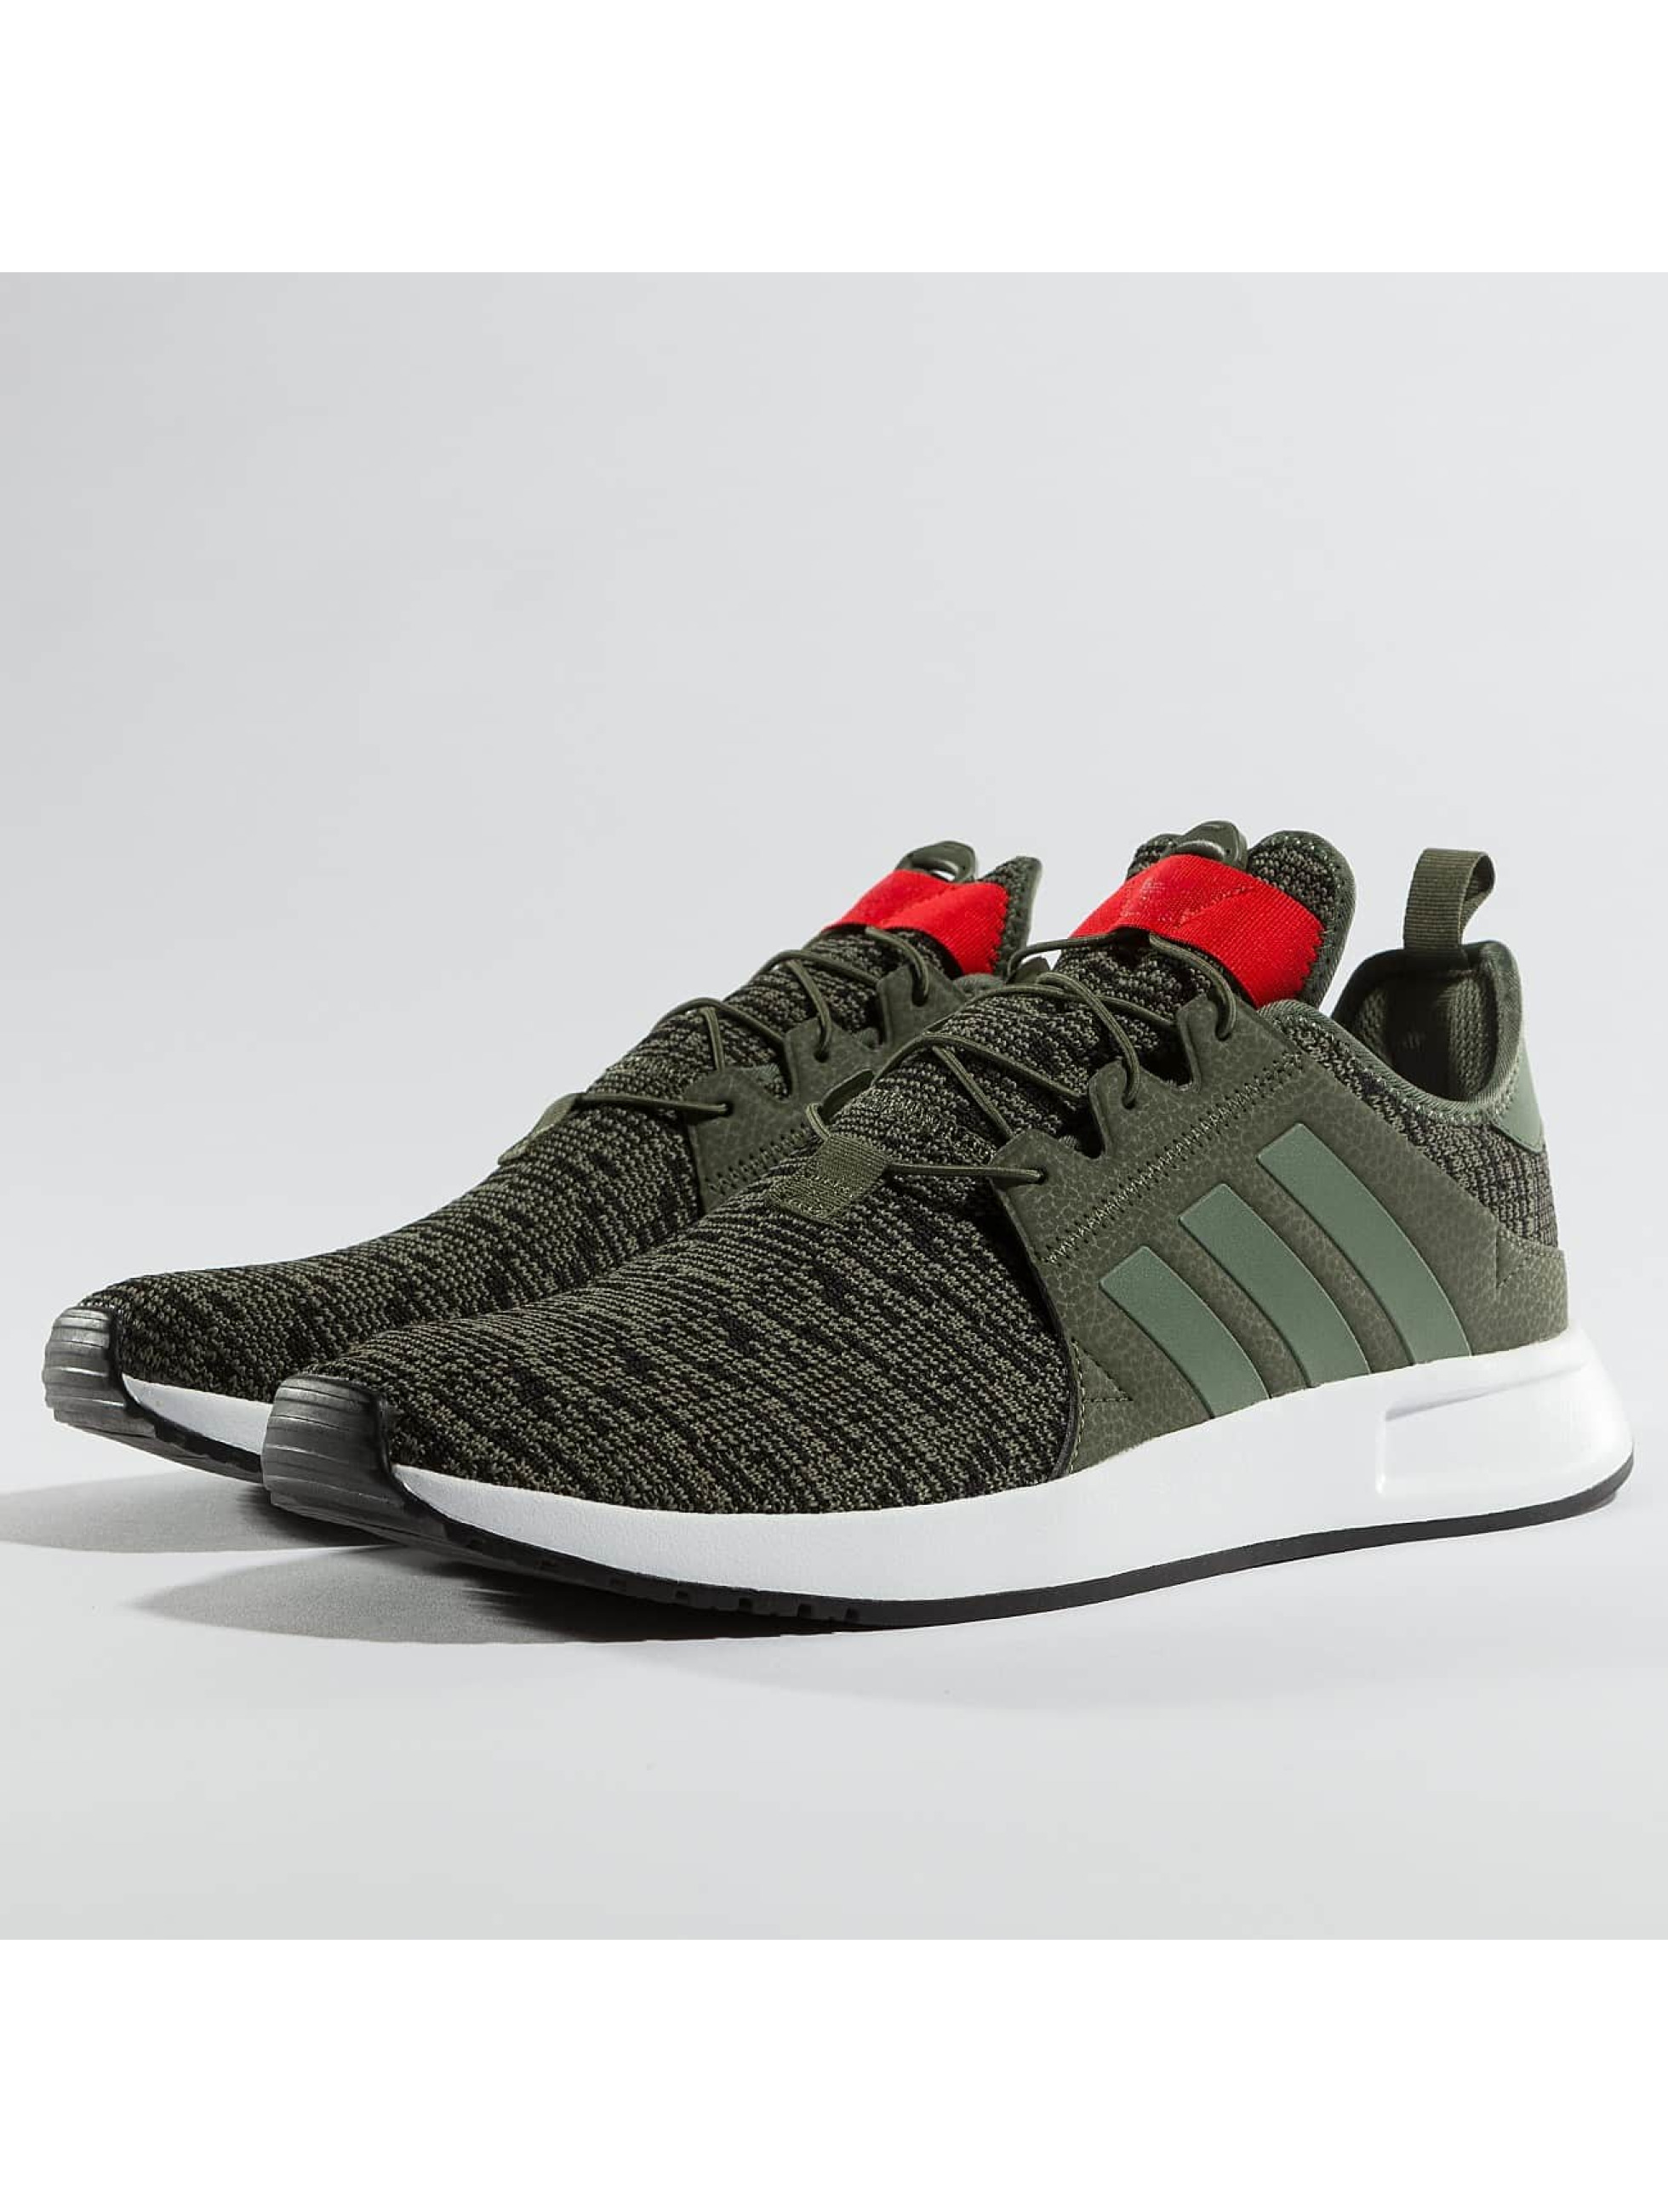 on sale 1dd58 5a43c purchase adidas hvid eqt support adv sko kvinder originals 3bd10 99136  promo code for adidas originals sneakers xplr grøn abfc9 402d8